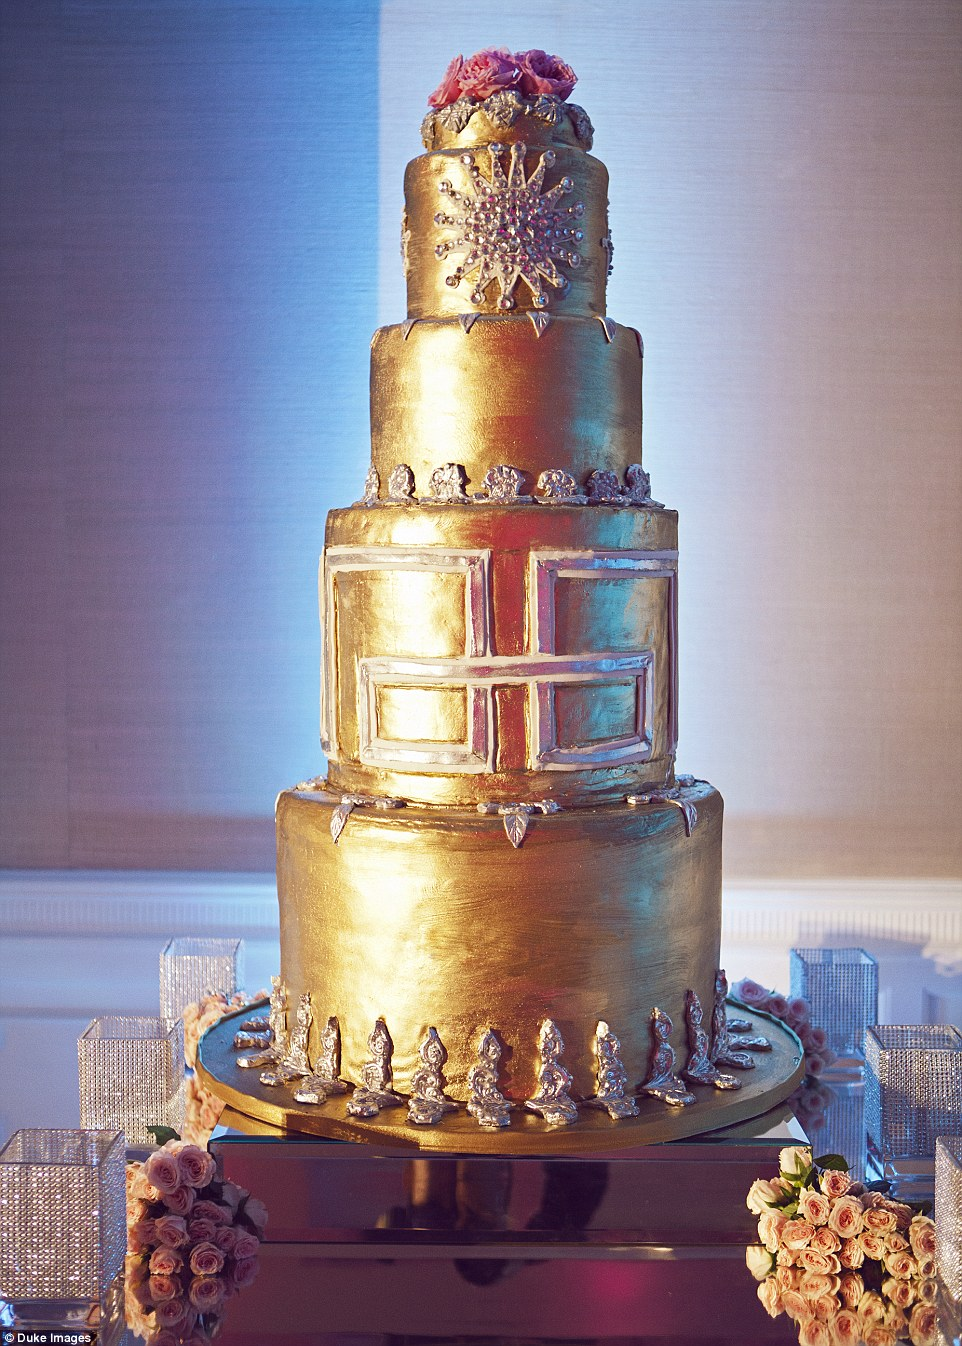 The wedding cake was a glamorous gold art deco design